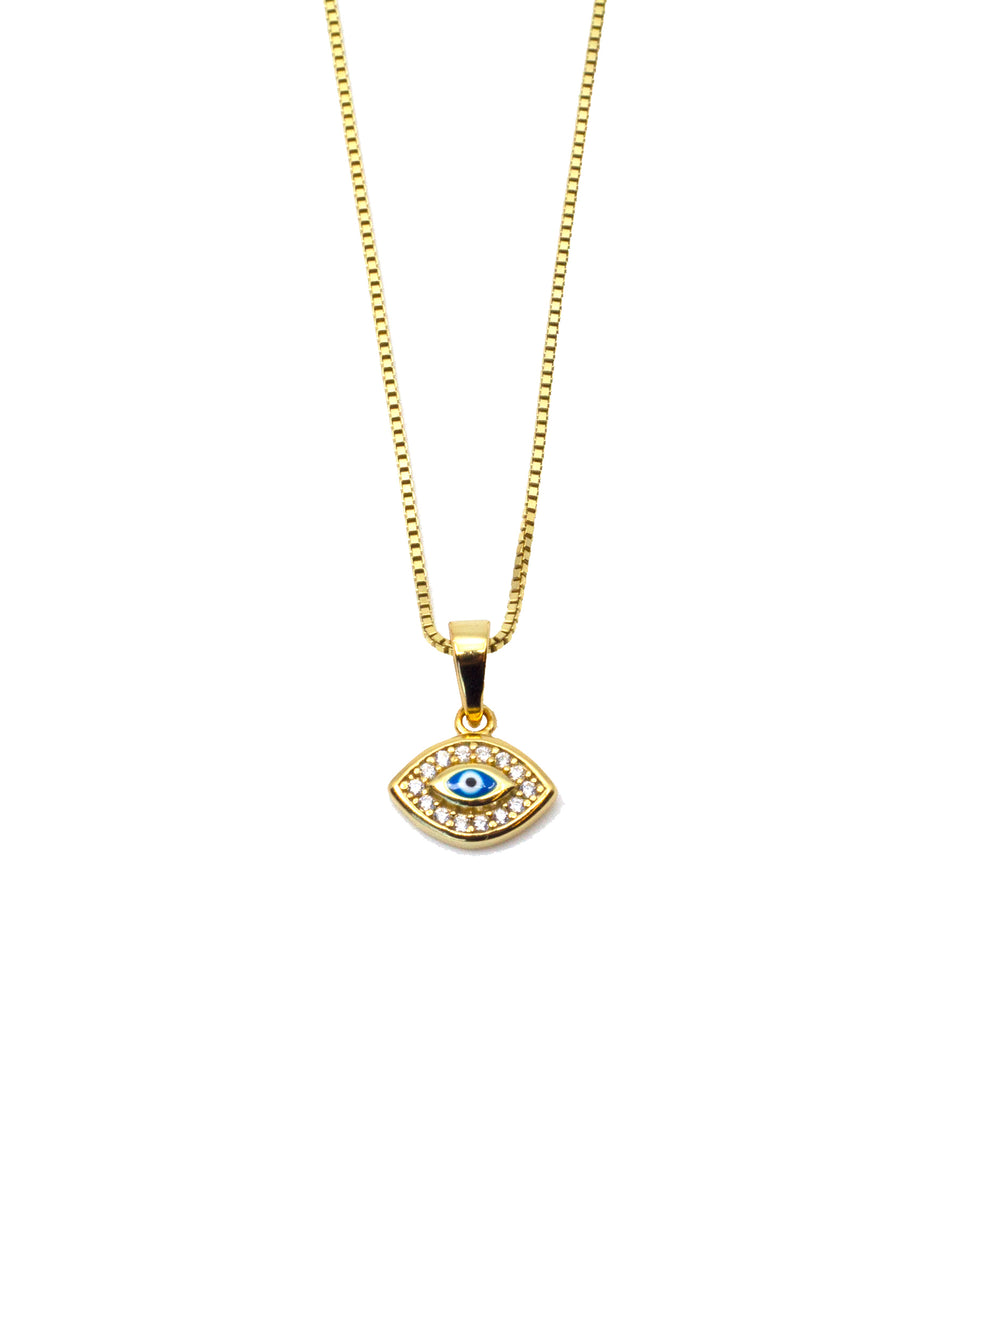 THE SINGLE EVIL EYE NECKLACE